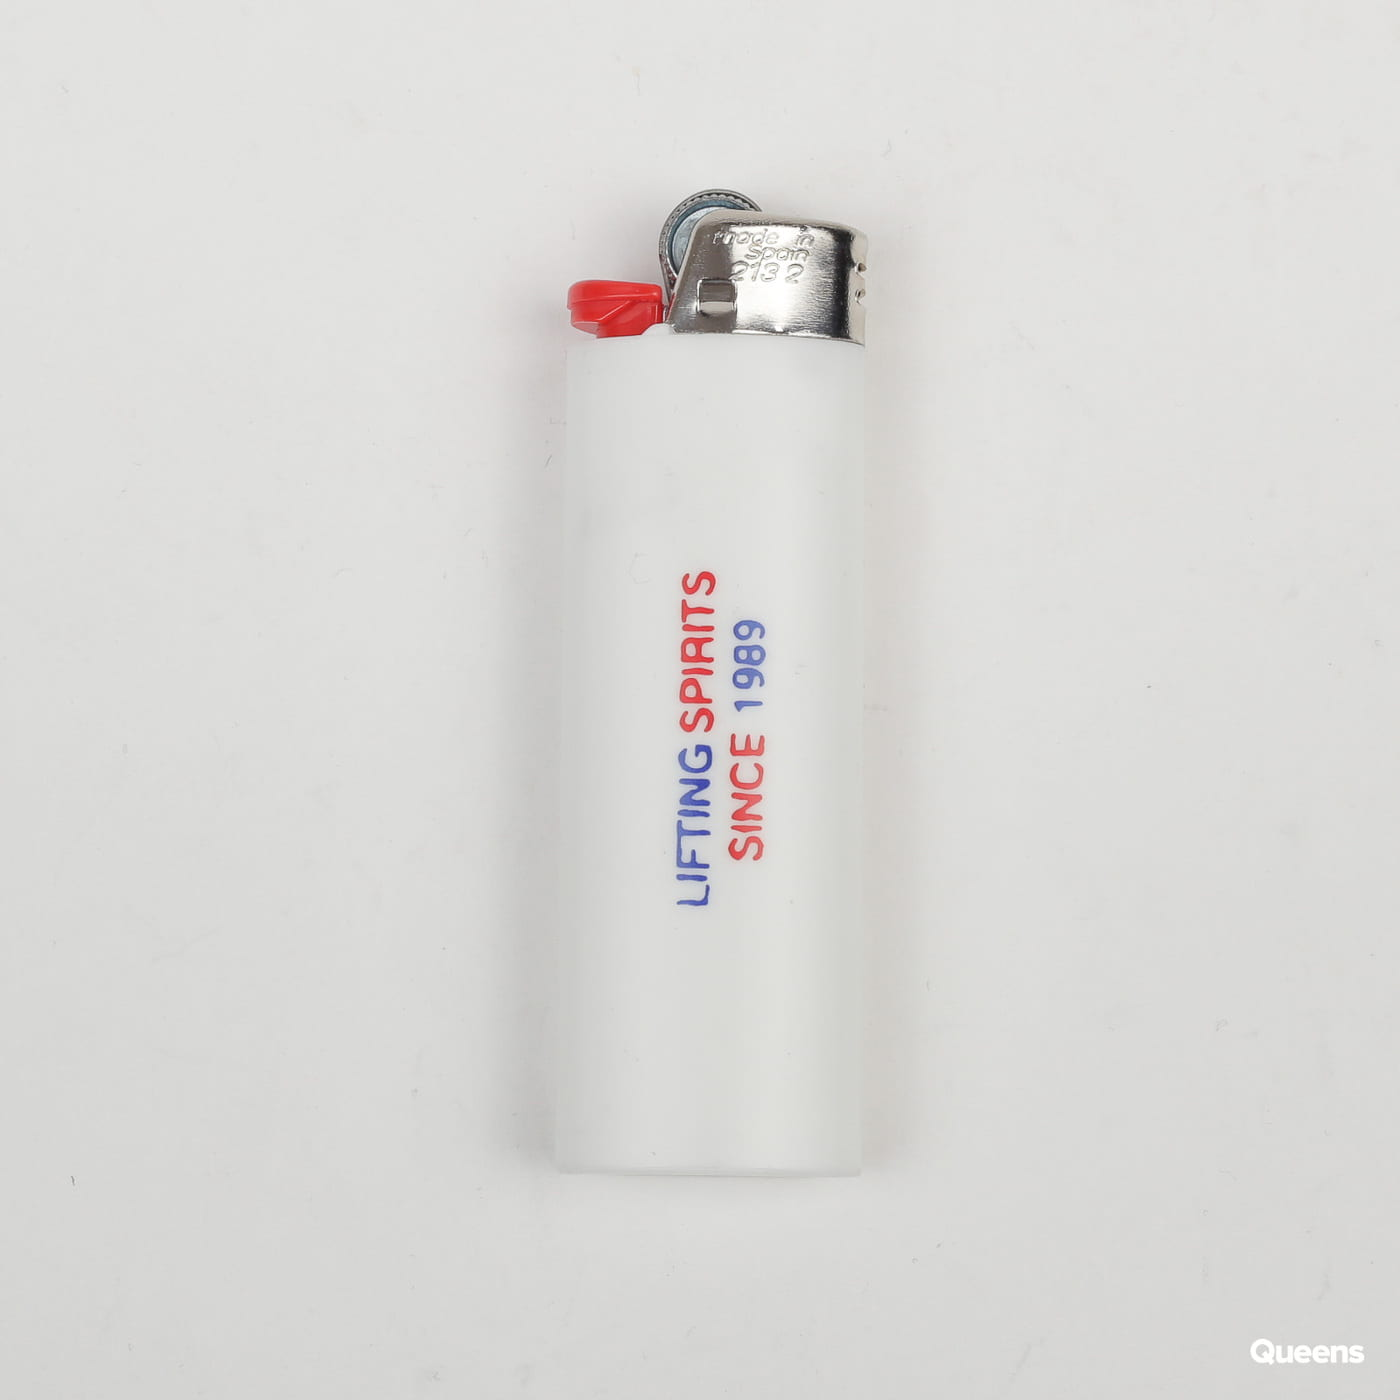 Carhartt WIP Bic Lighter white / blue / red